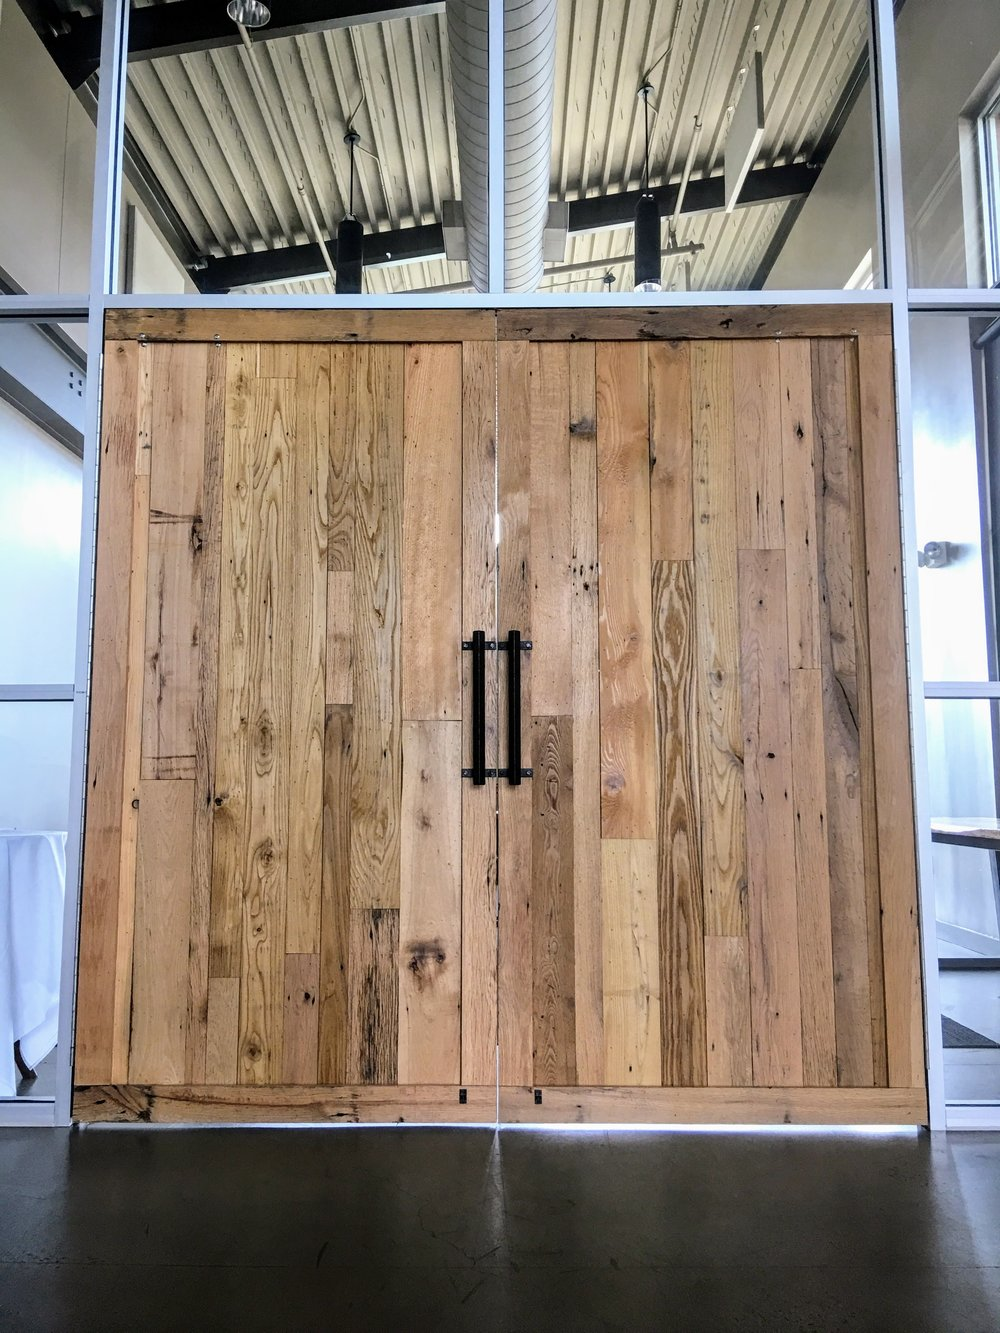 u.s.national whitewater center custom barn doors & tables